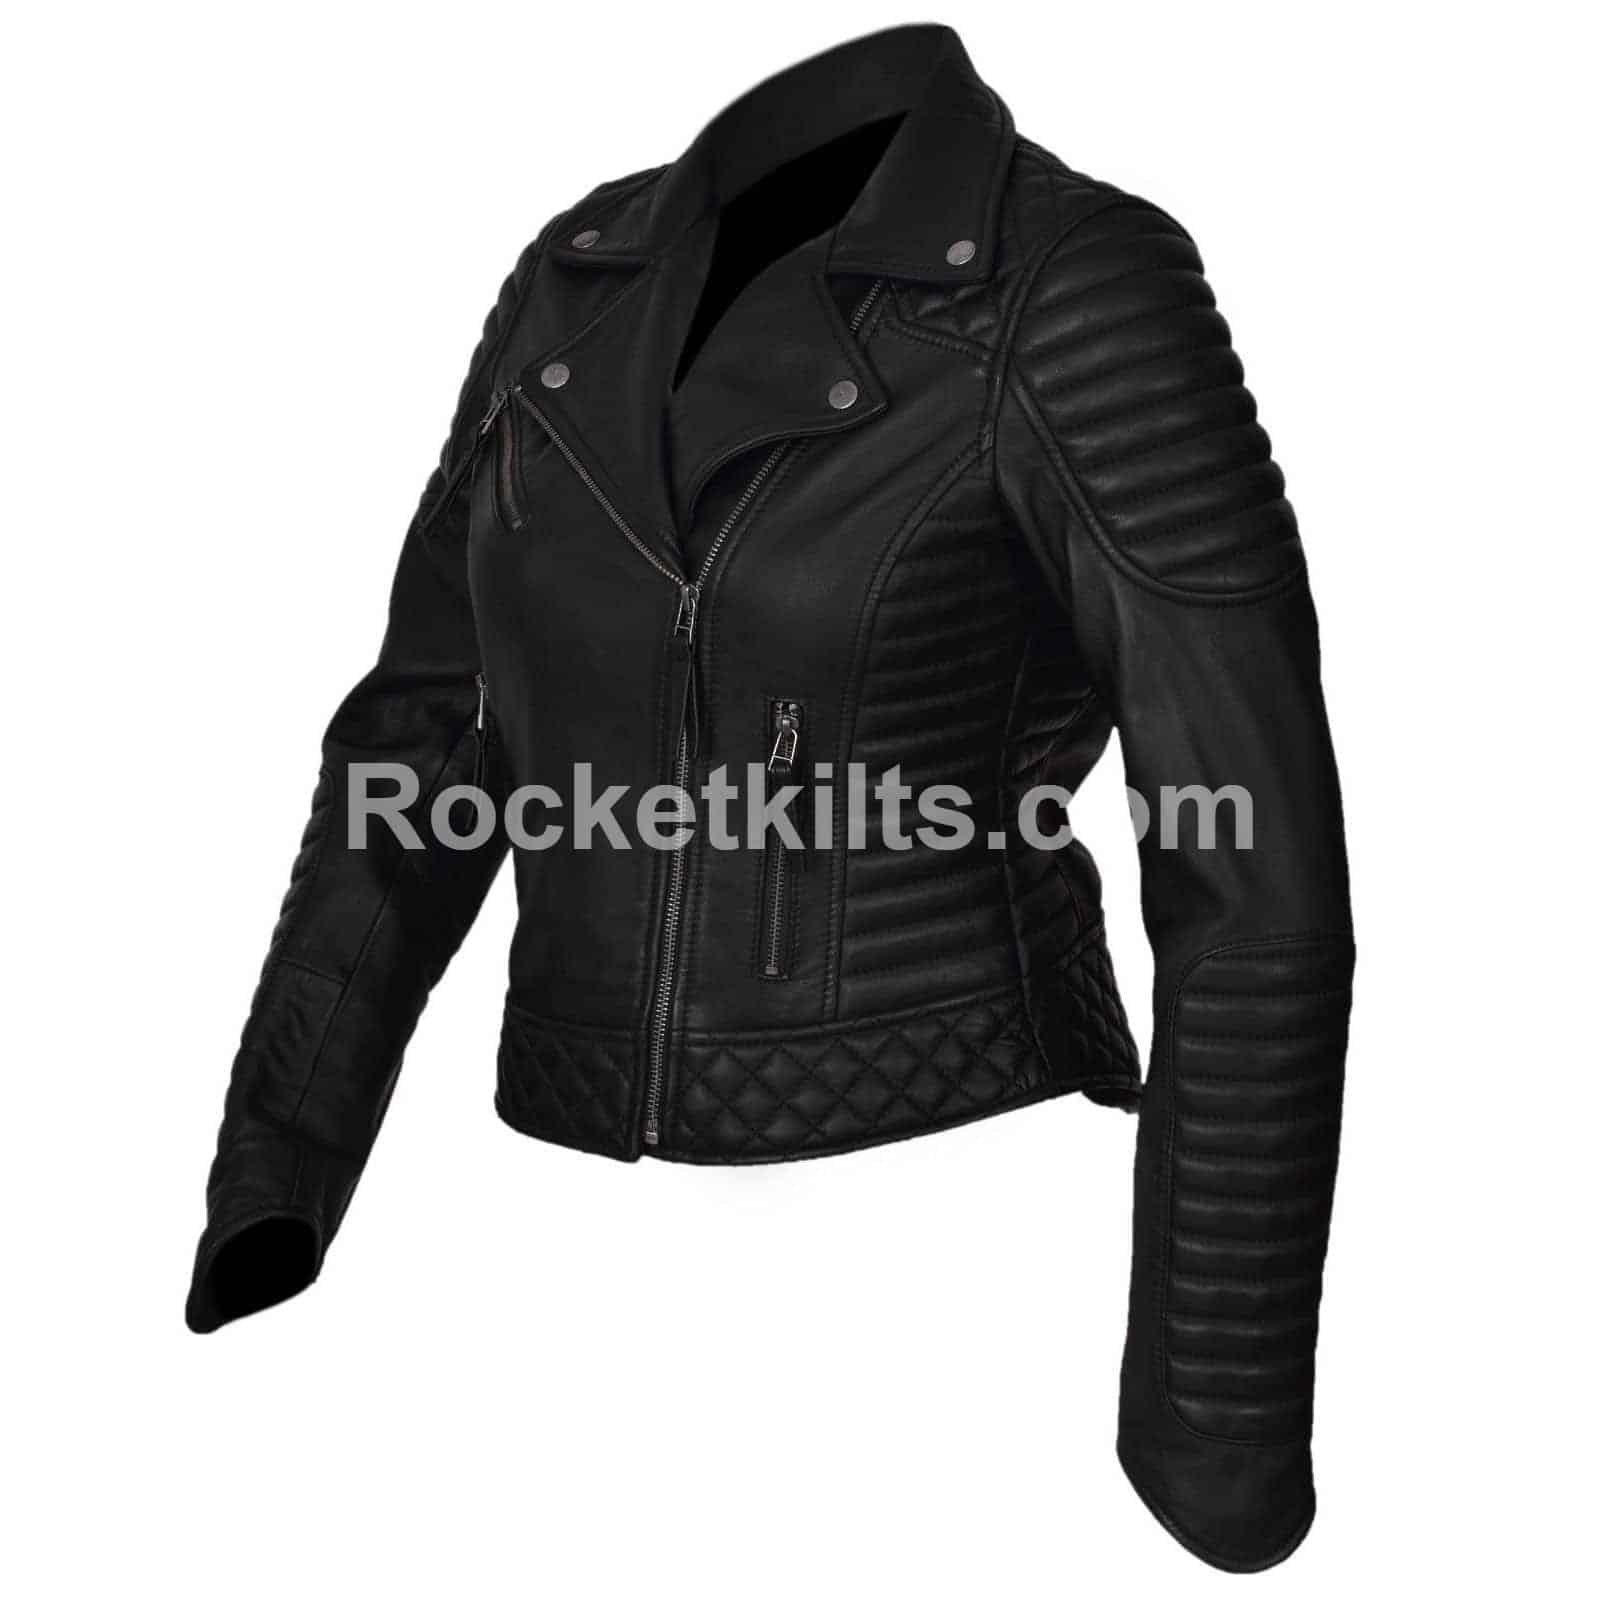 3336c50ab Vintage Style Leather Jacket With Detailed Padding For Sale